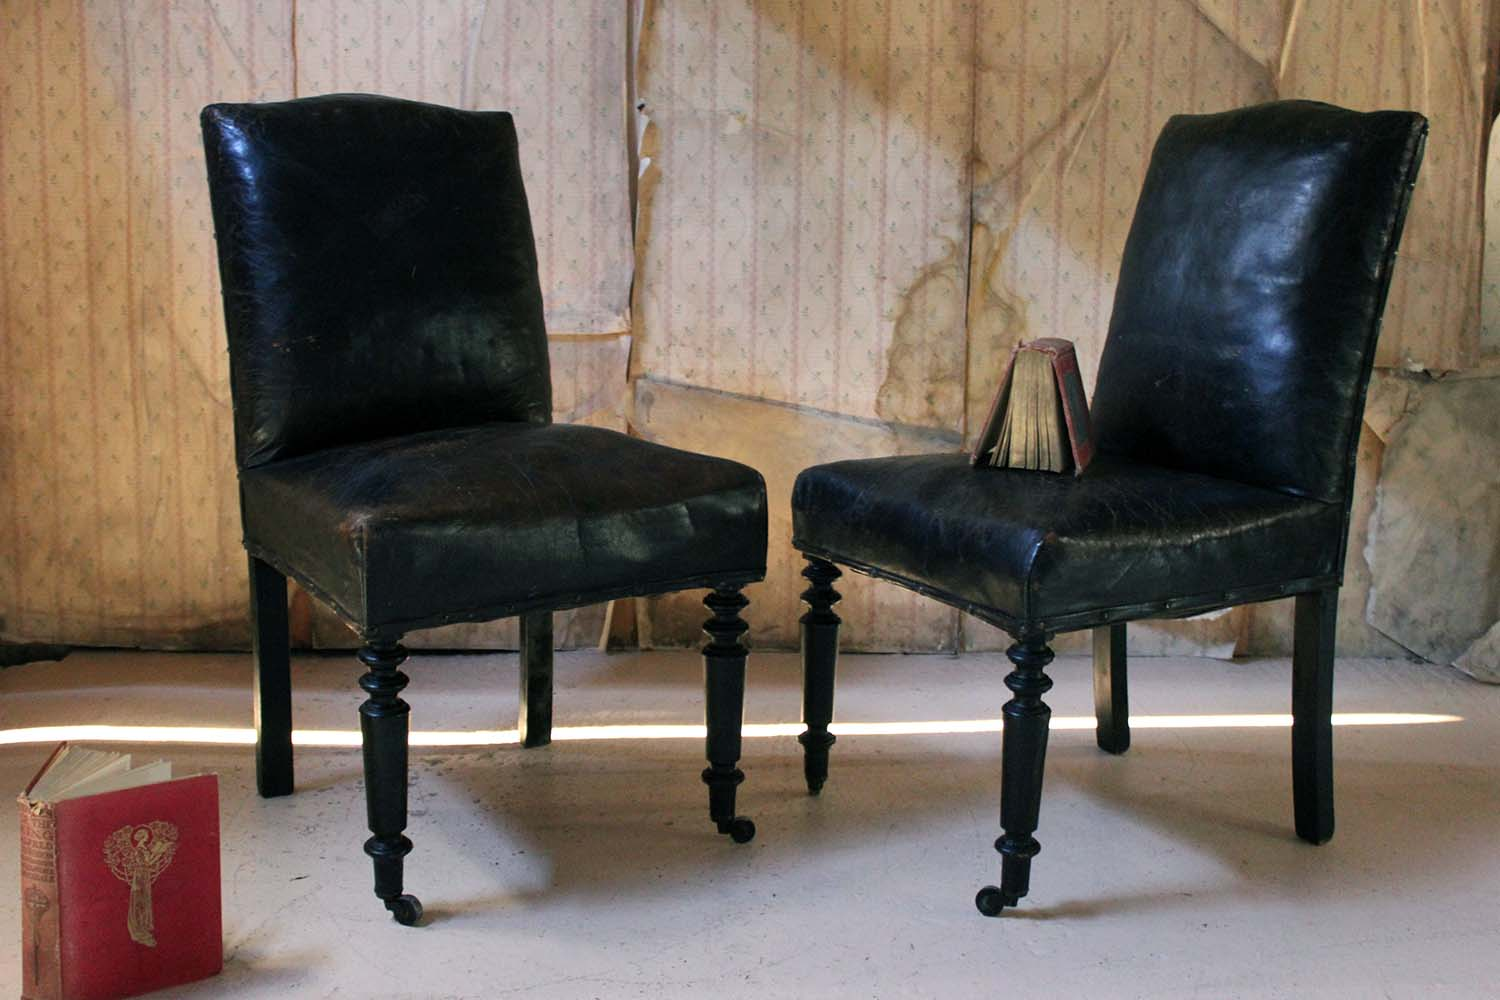 A Pair of 19thC French Black Leather Upholstered & Ebonised Library Chairs c.1880